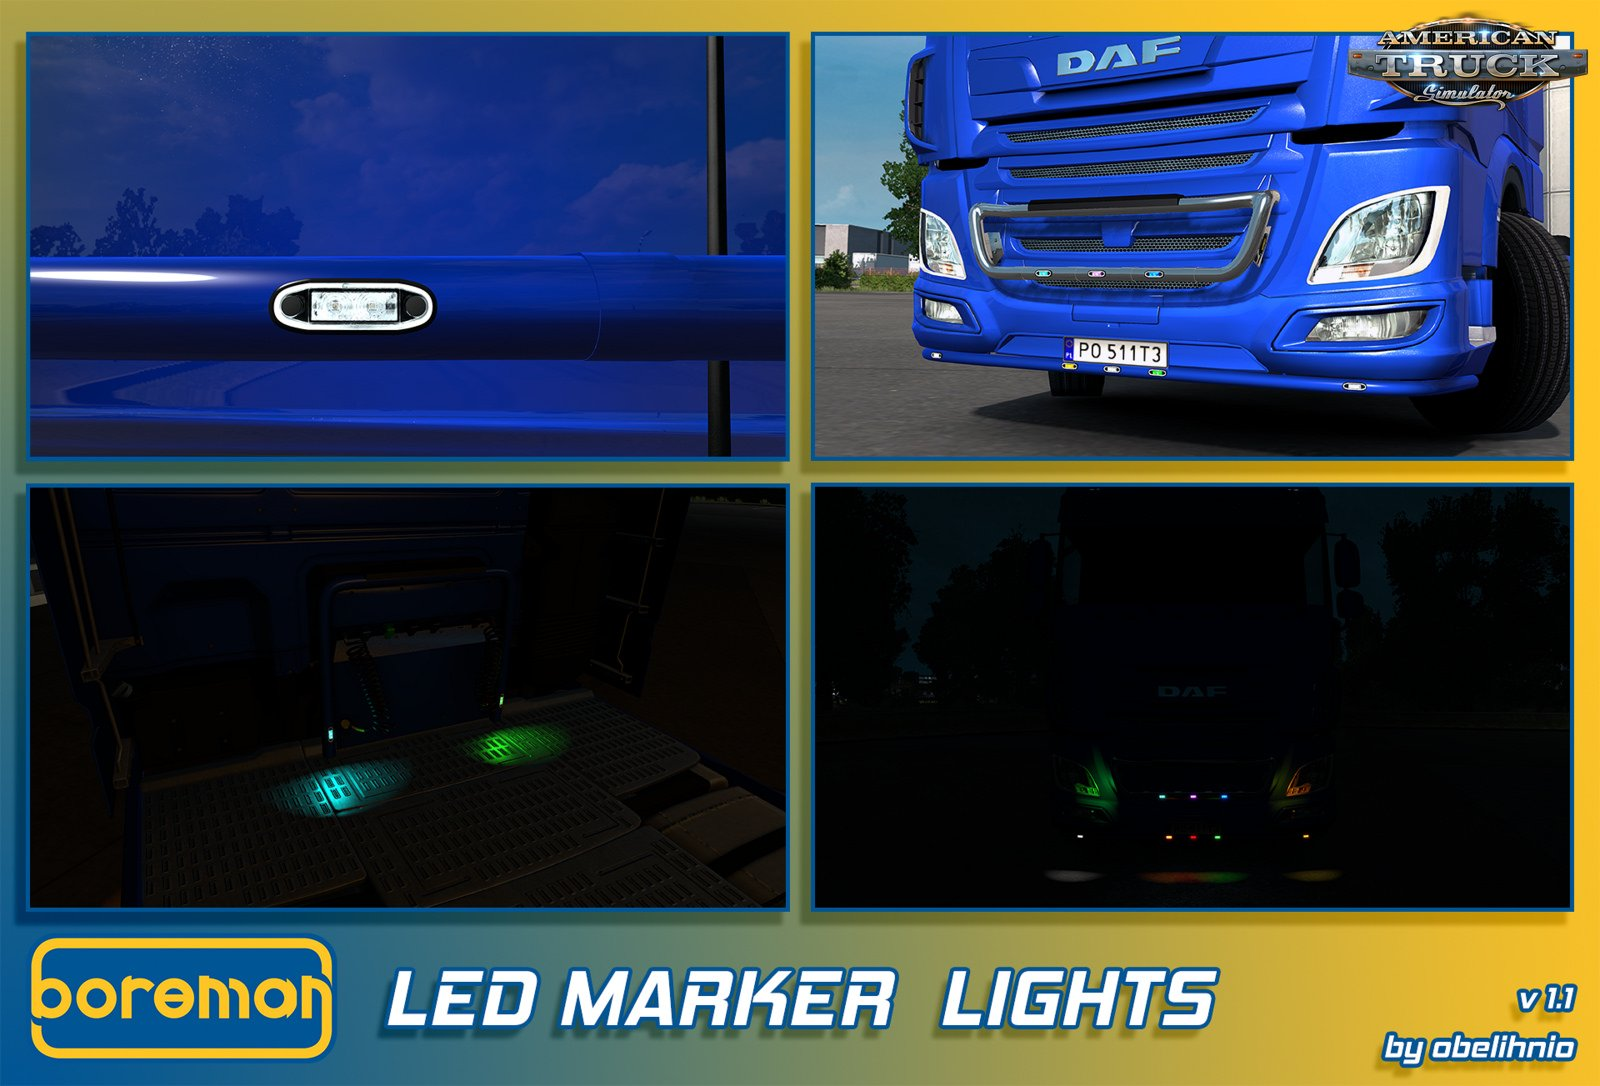 Boreman LED Marker Lights v1.1 by obelihnio